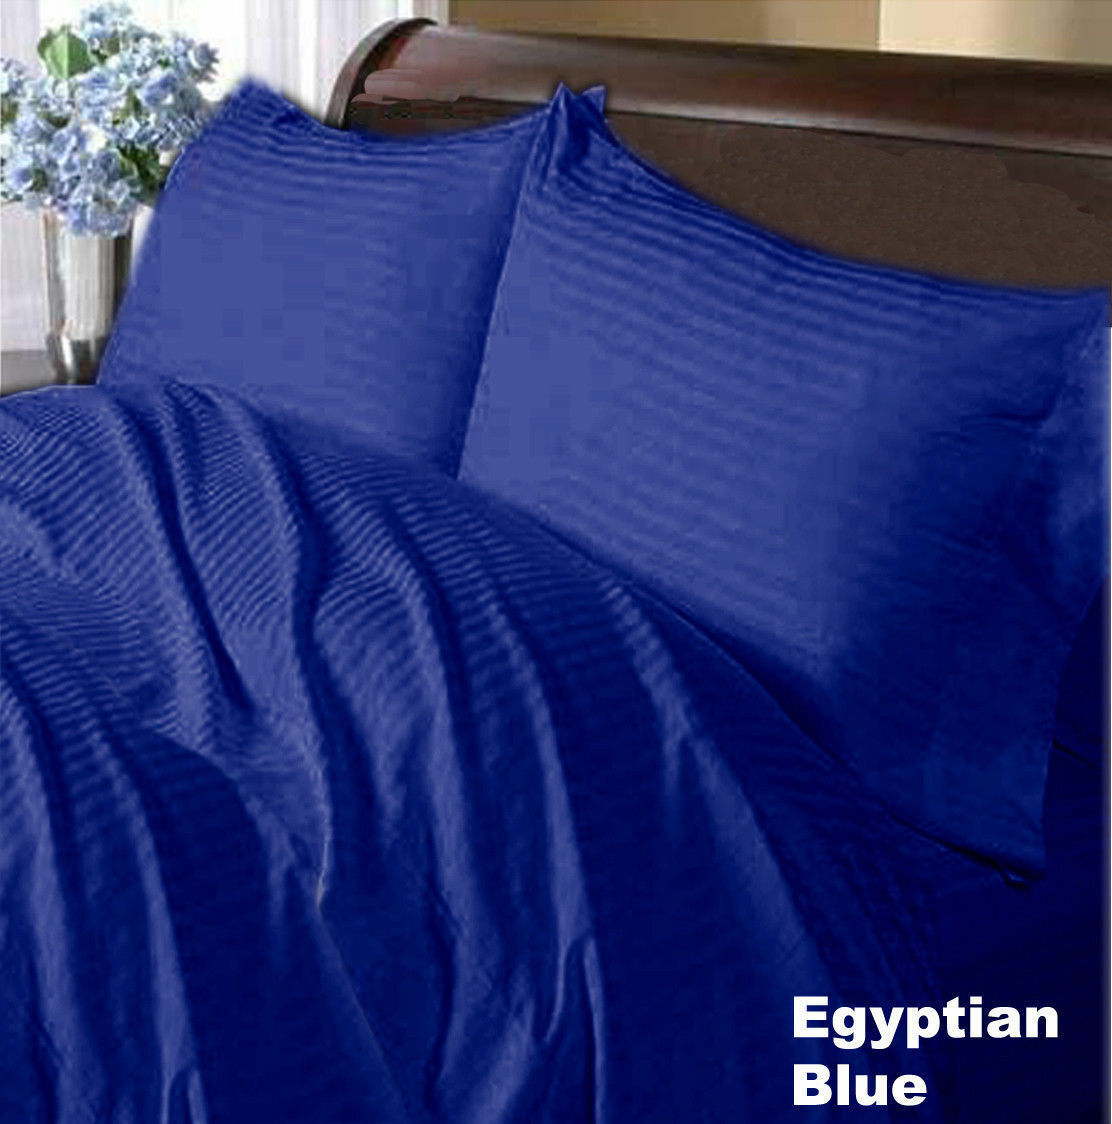 BEDDING ITEMS-SHEET SET DUVET FITTED 1000TC EGYPTIAN COTTON EGYPTIAN blueeeeE STRIPE